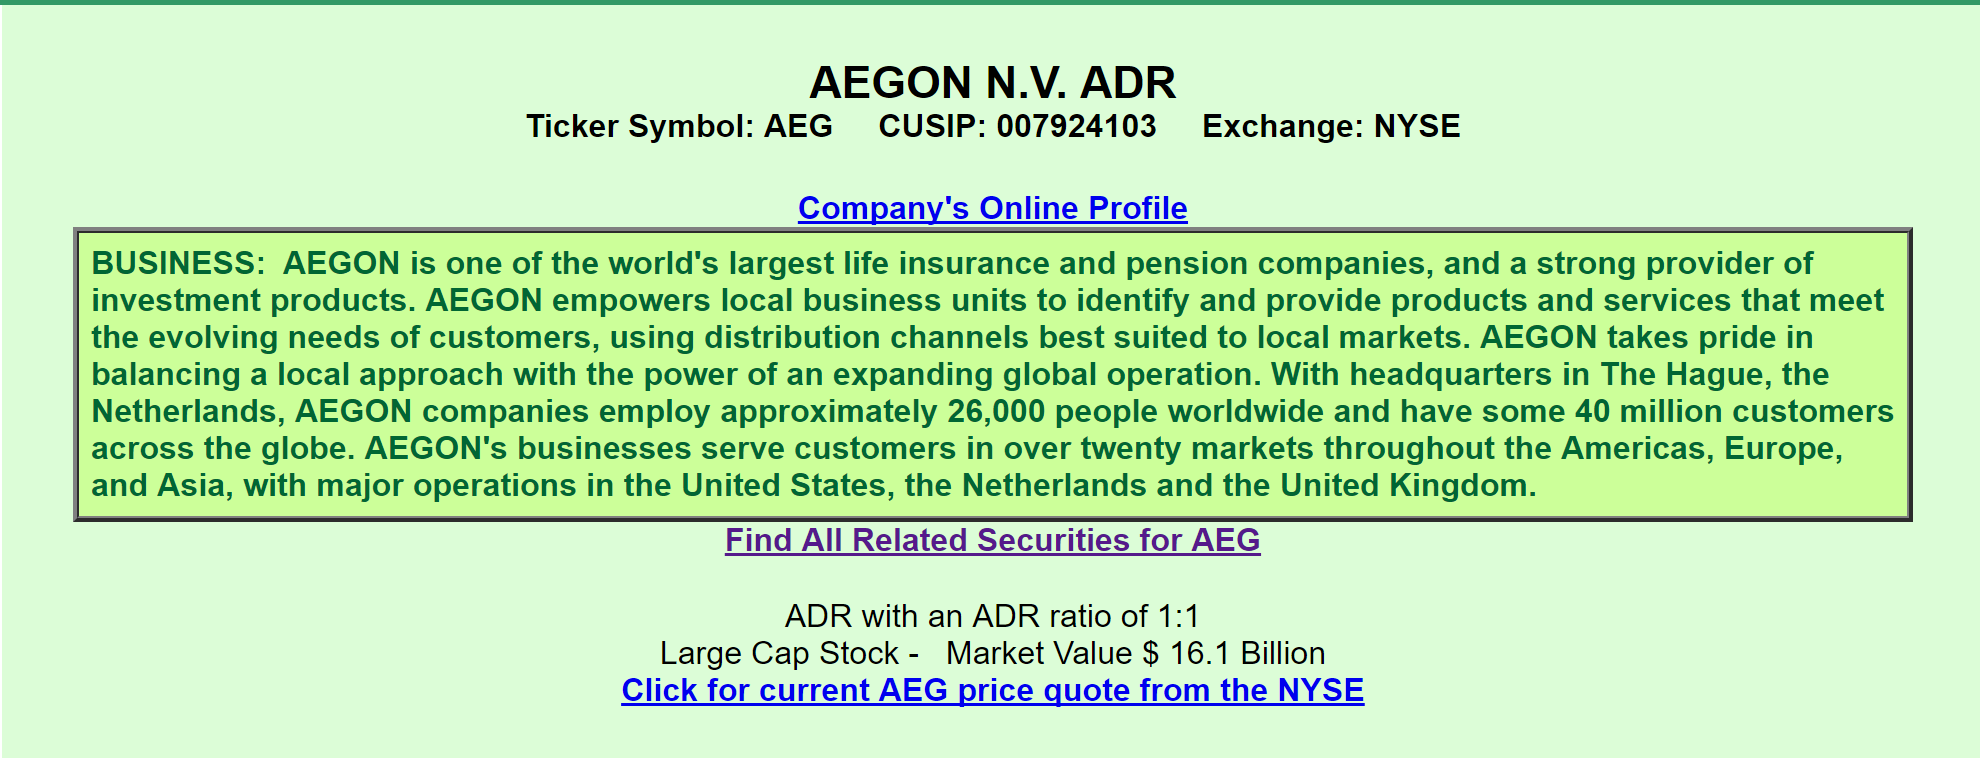 Aegon a view from the perspective of a preferred investor aegon a quick review informs us that aeg is that it is one of the worlds largest life insurance and pension companies it ipod with a market value of 161 buycottarizona Image collections